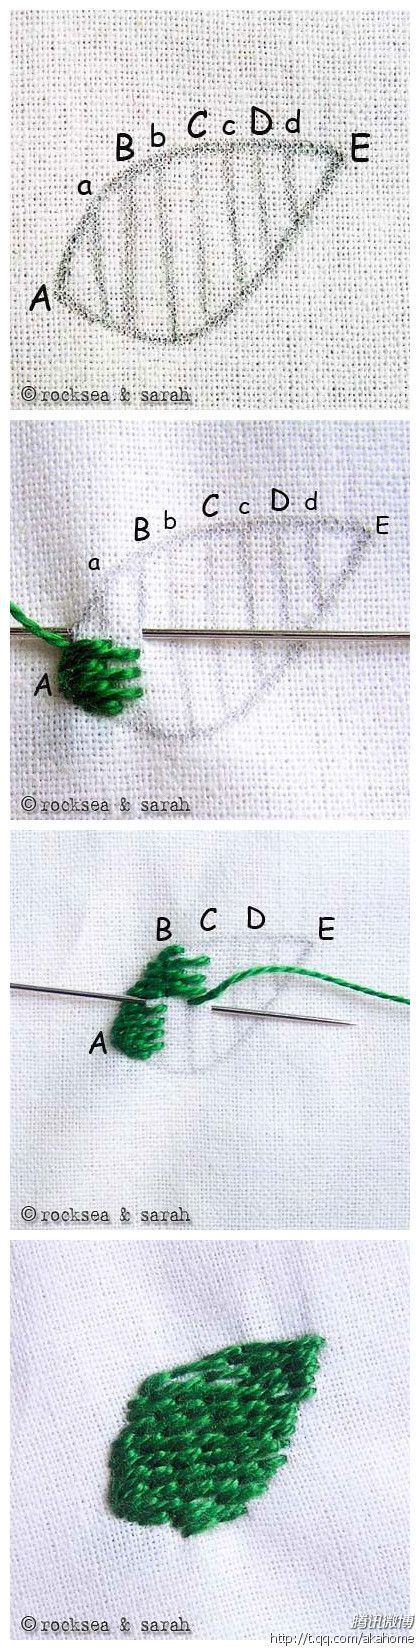 Stitching and Craft Techniques